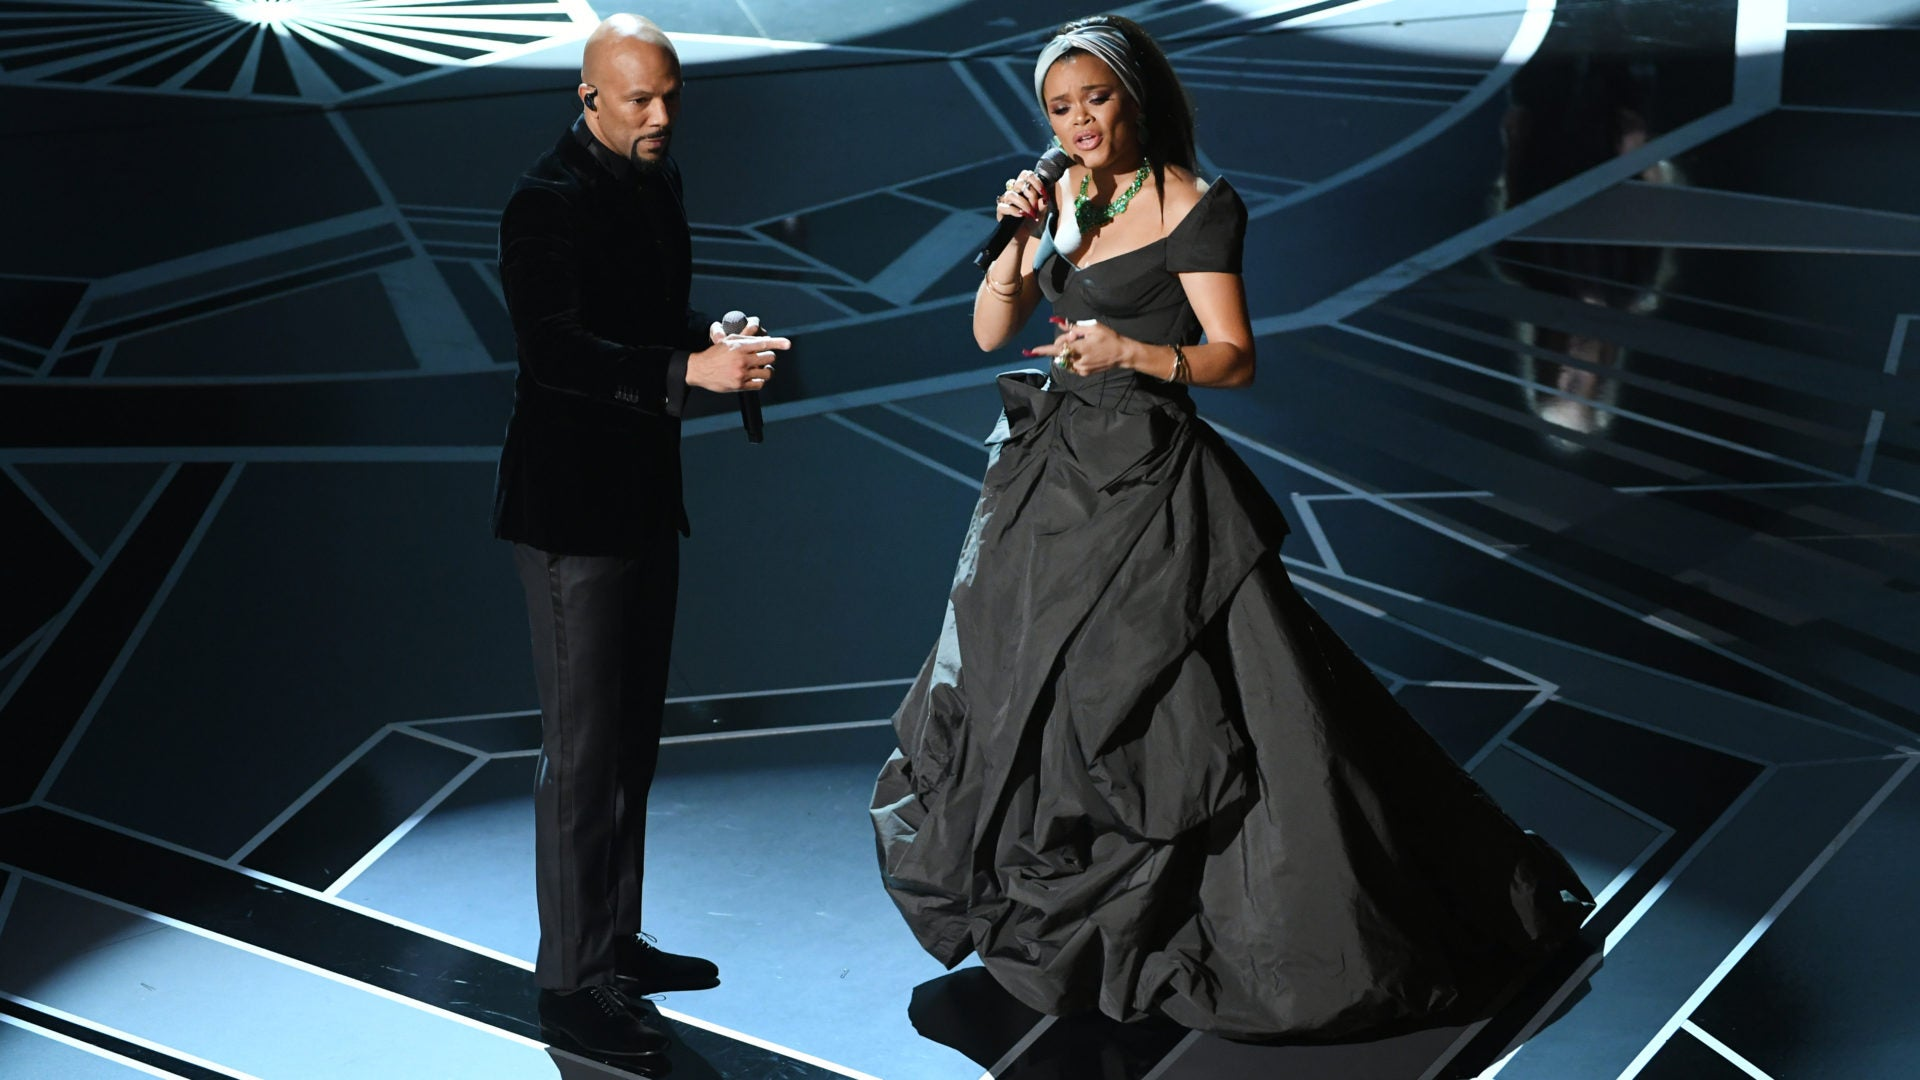 From Black Lives Matter To #MeToo: Andra Day And Common Make Activists The Stars In Powerful Oscars Performance